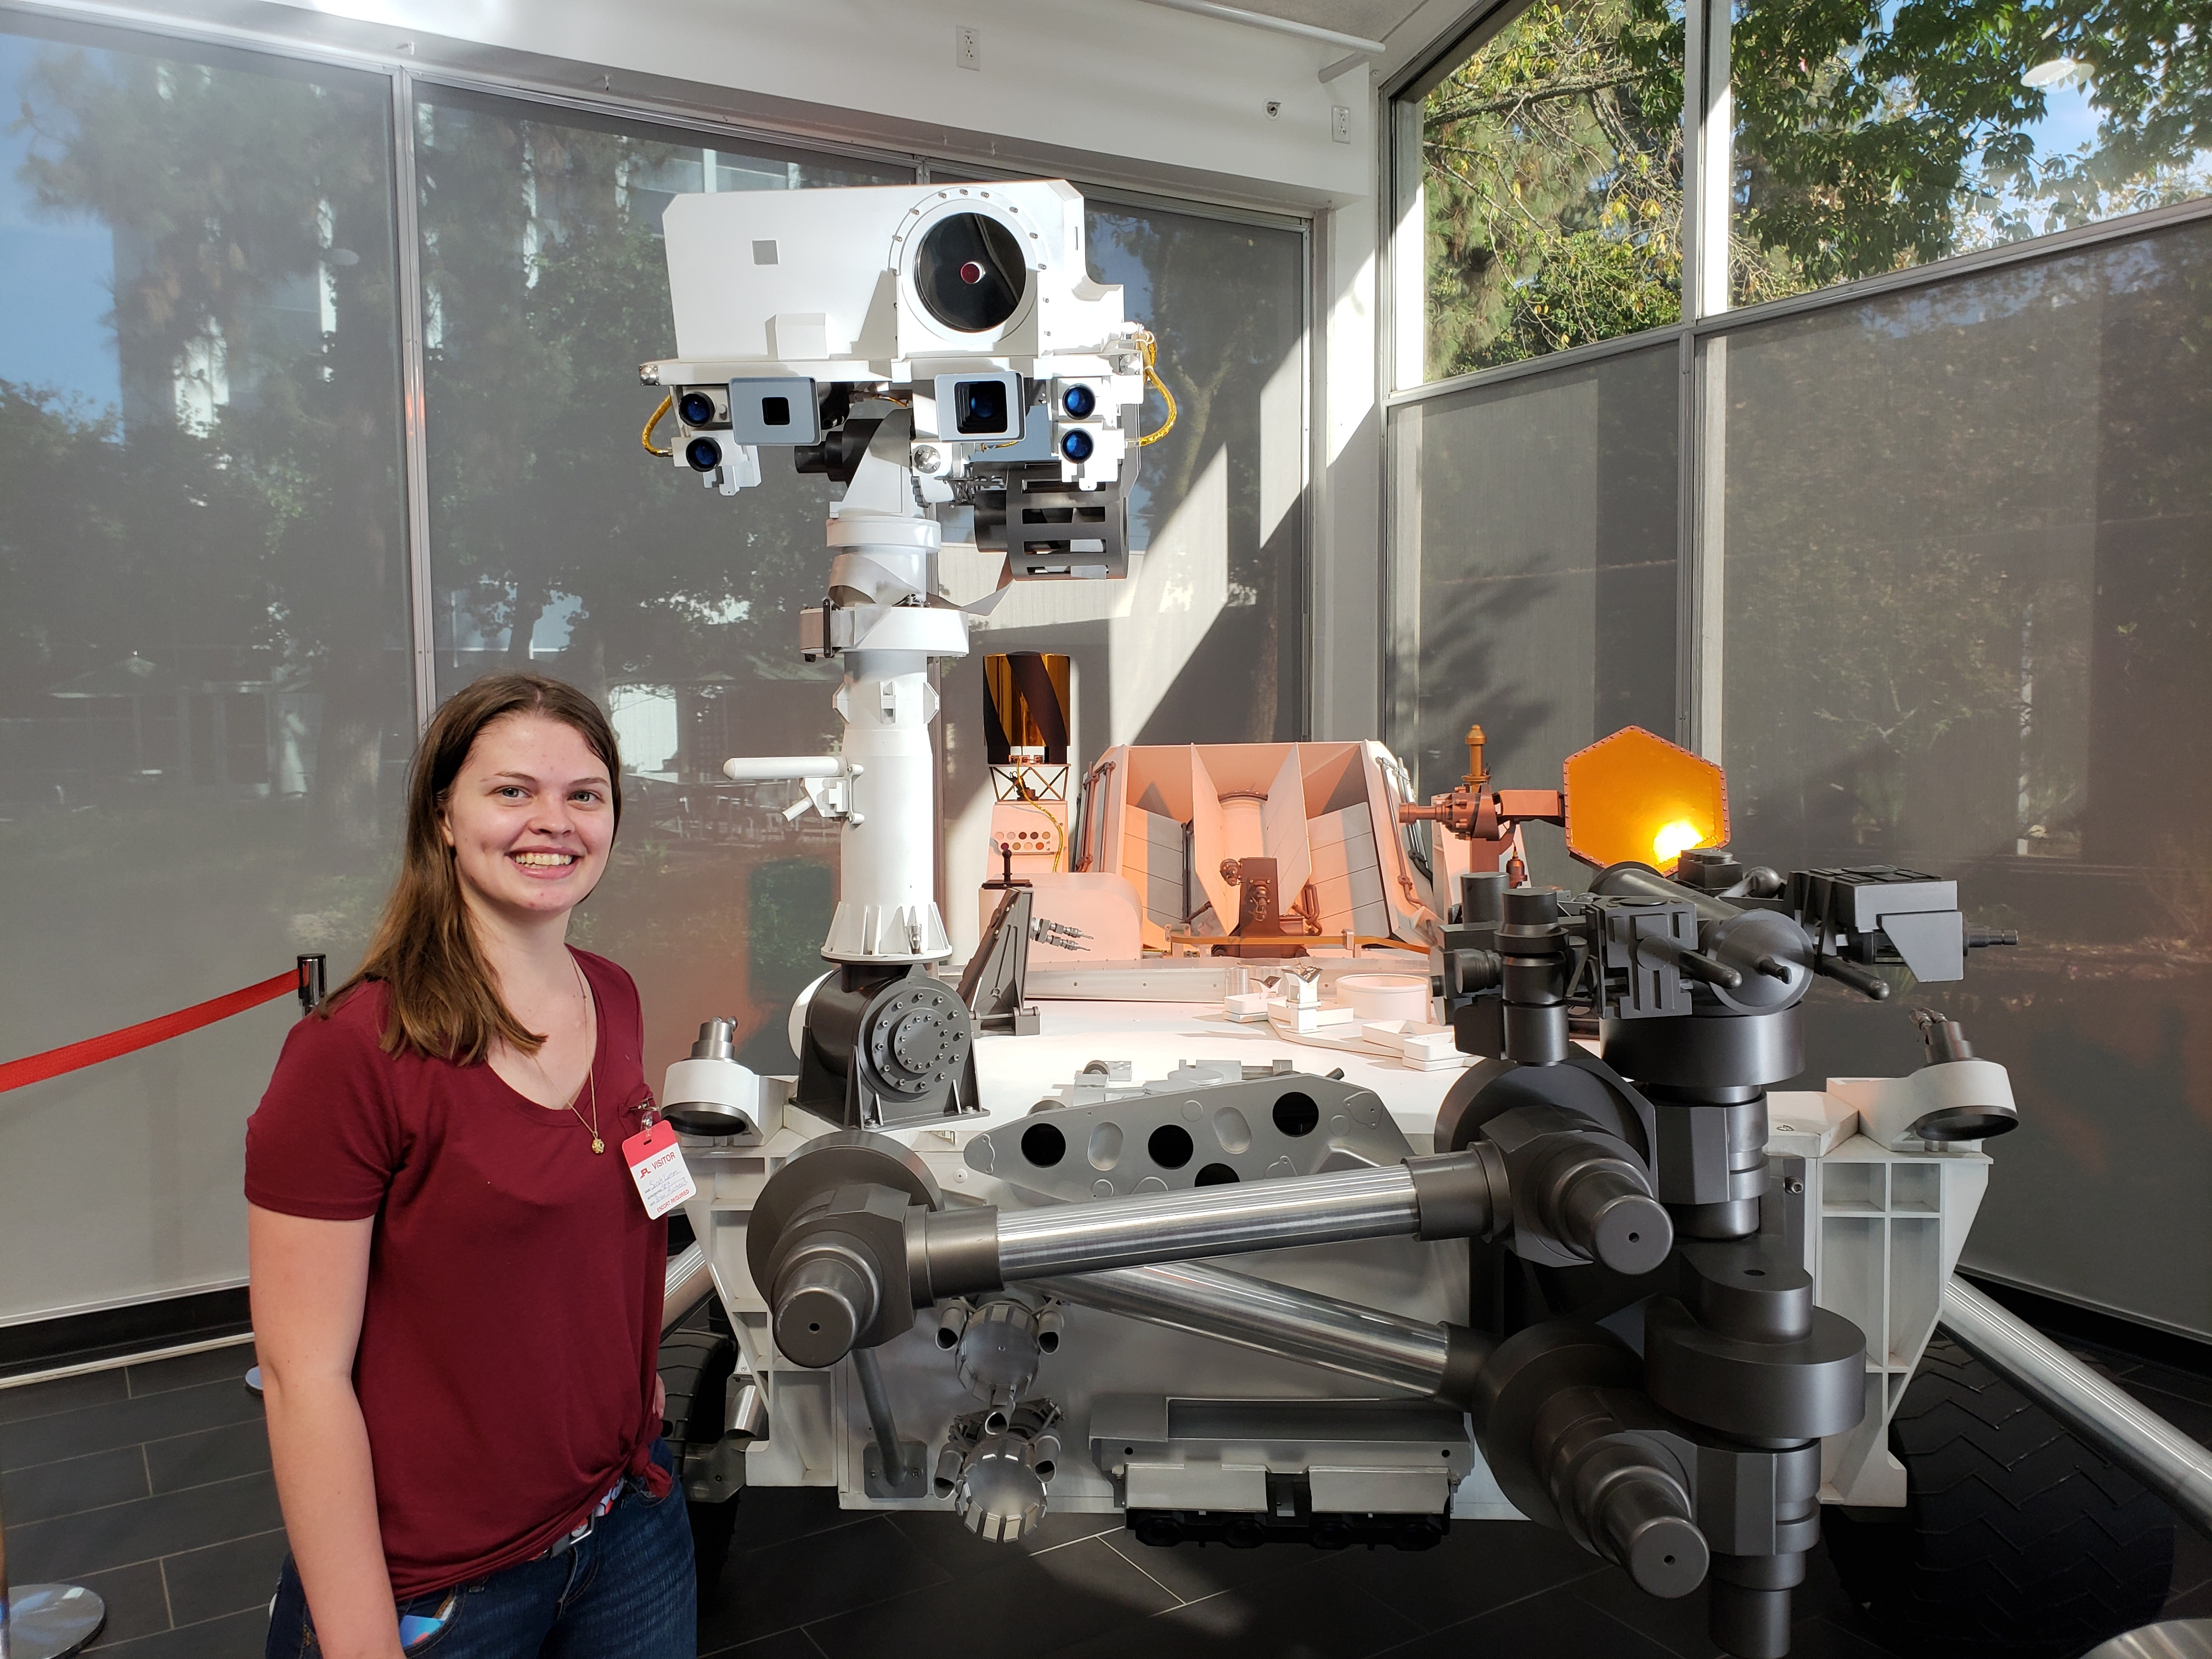 Lamm standing with replica model of Curiosity rover